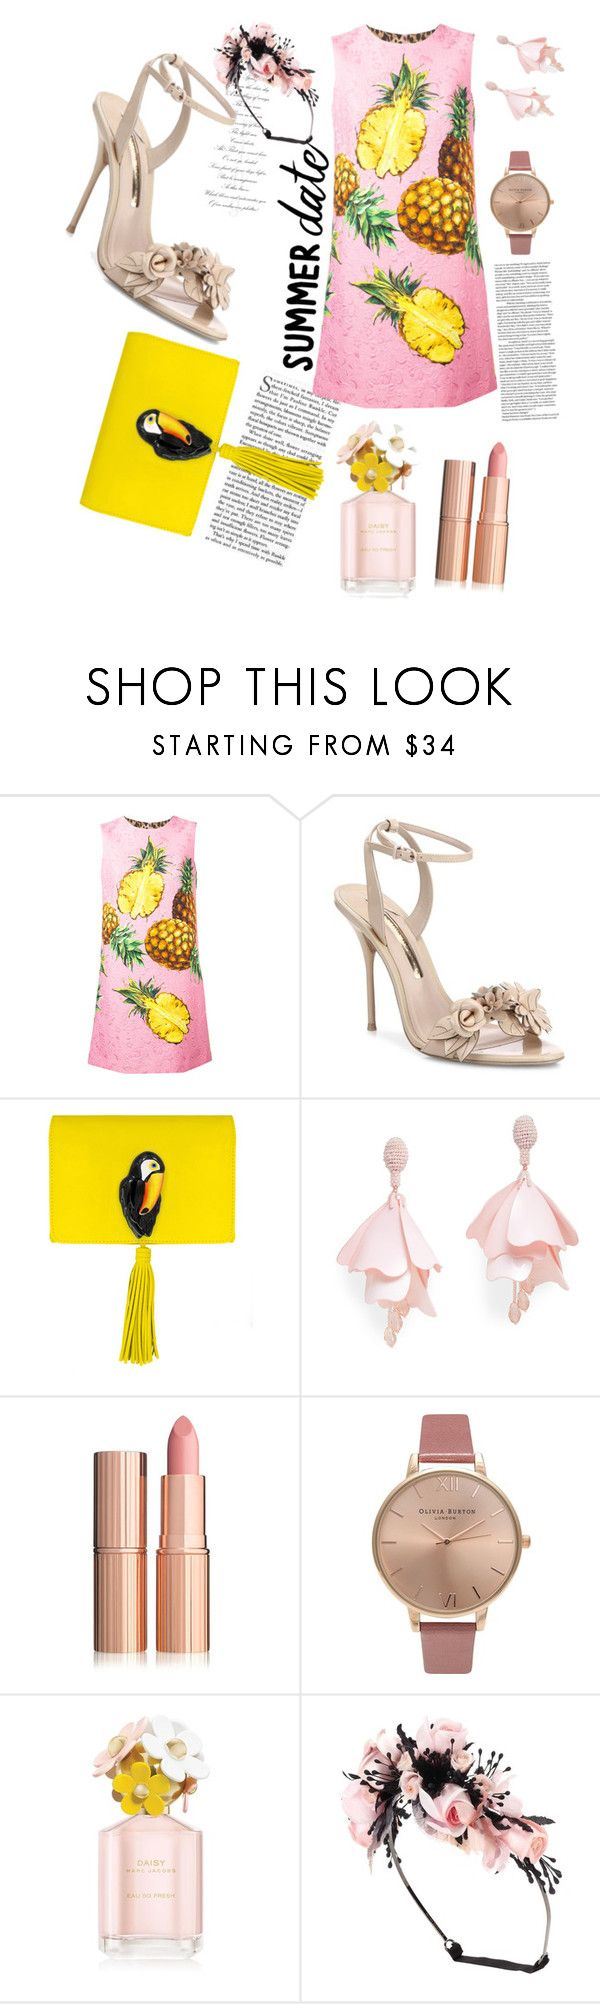 """Girly"" by namira-hauda-azlin on Polyvore featuring Dolce&Gabbana, Sophia Webster, Nach Bijoux, Oscar de la Renta Pink Label, Olivia Burton, Marc Jacobs and Gucci"